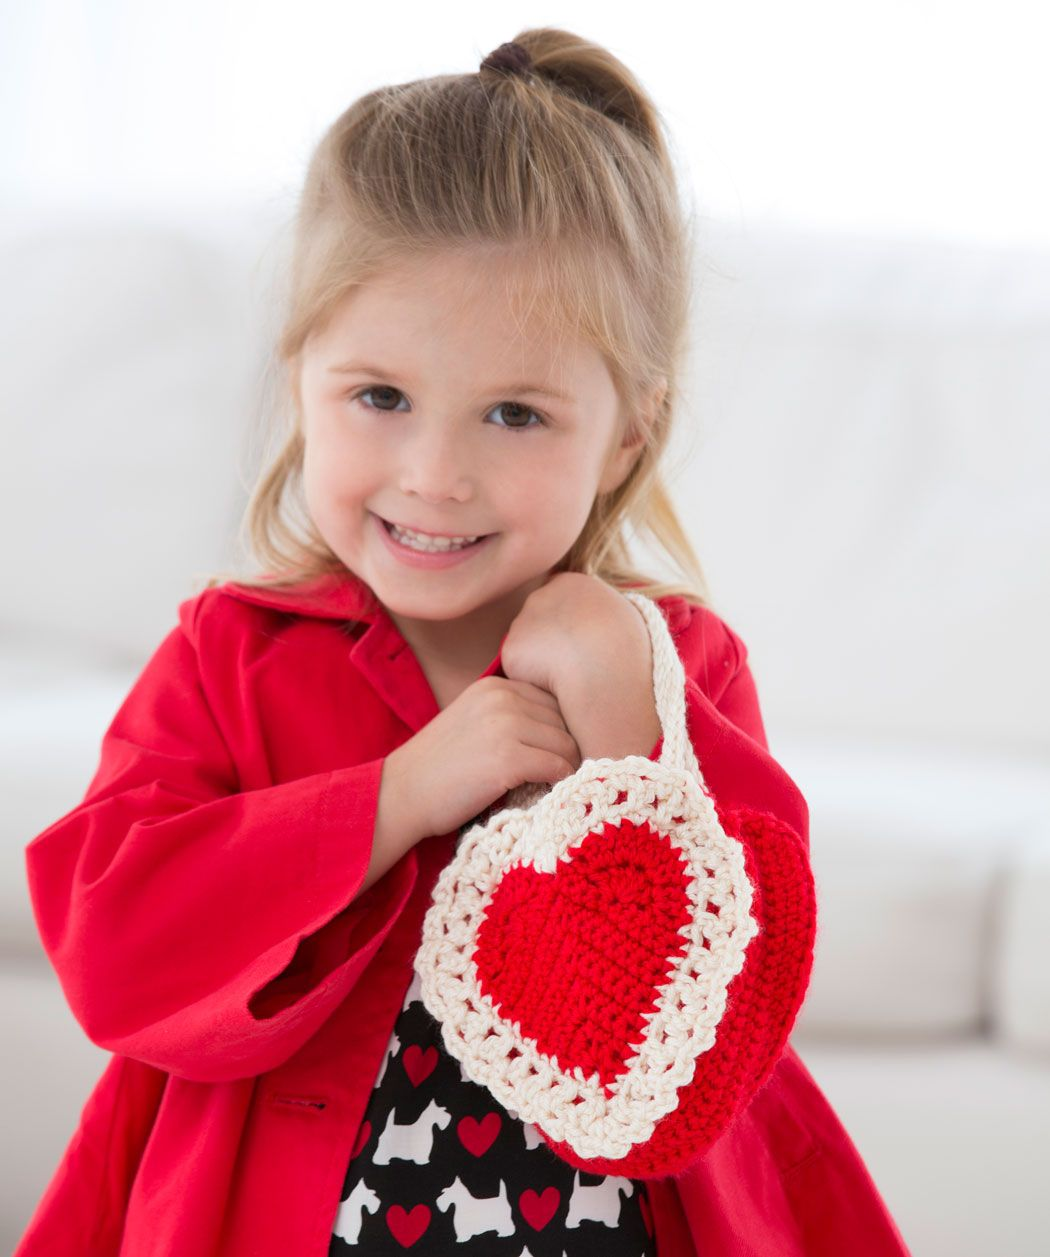 Heres my heart gift bag crochet pattern red heart crochet 10 heres my heart gift bag free crochet pattern for valentines day from red heart yarns bankloansurffo Image collections